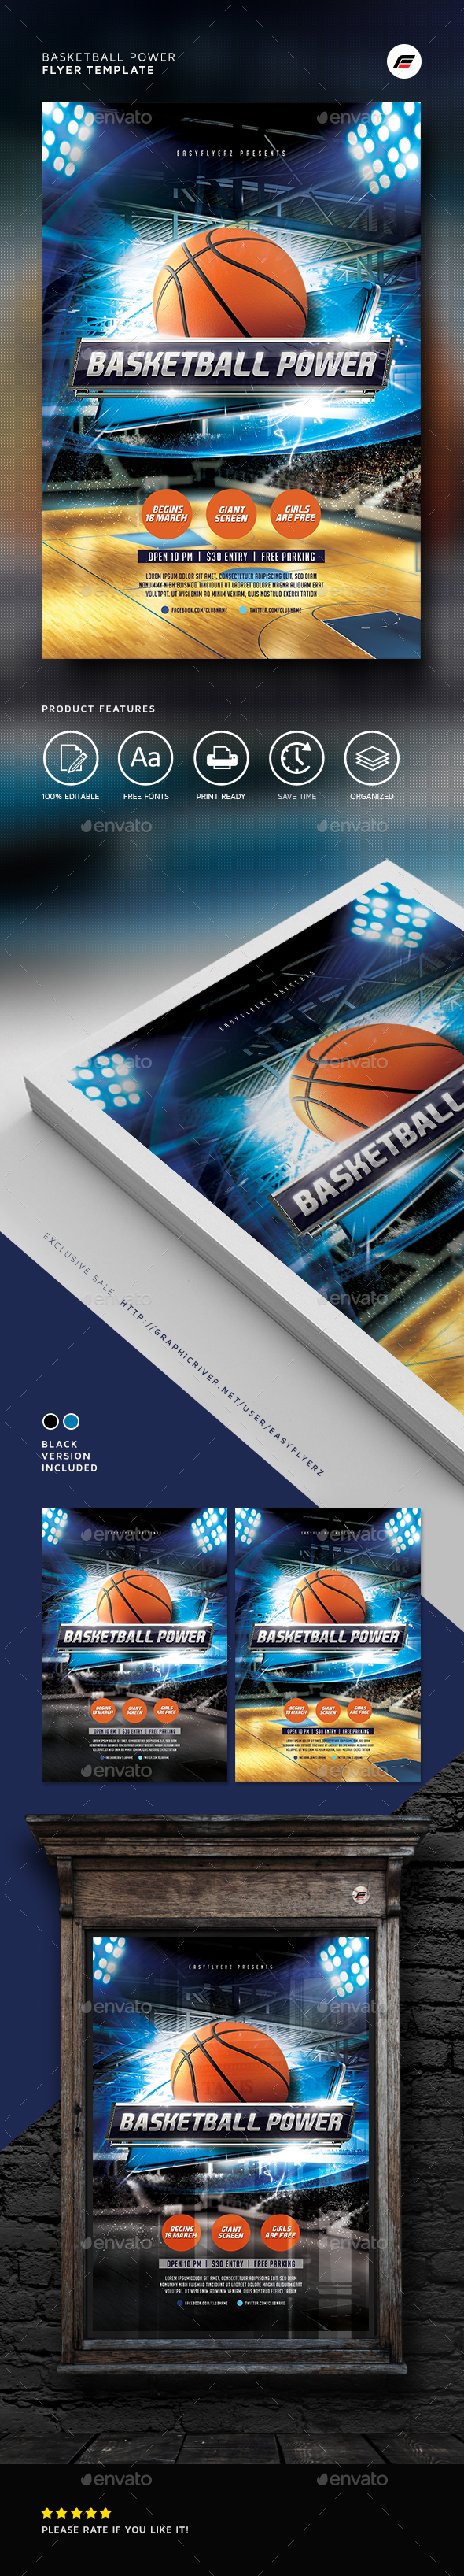 Basketball Power Flyer Template - Sports Events